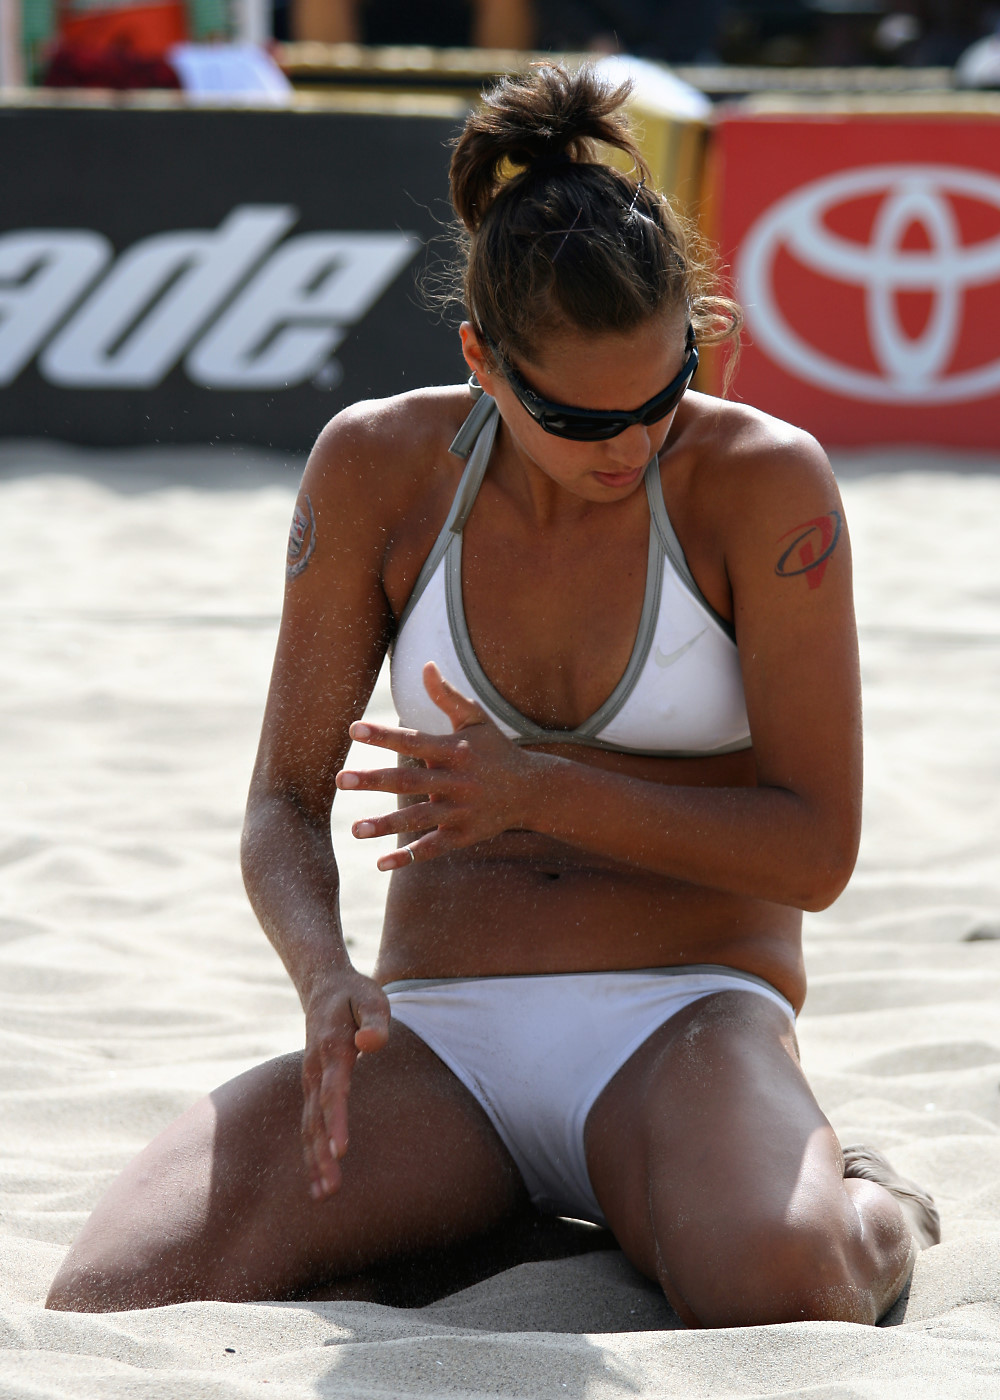 Tom Logan Hot Volleyball Female Player Images And Wallpapers